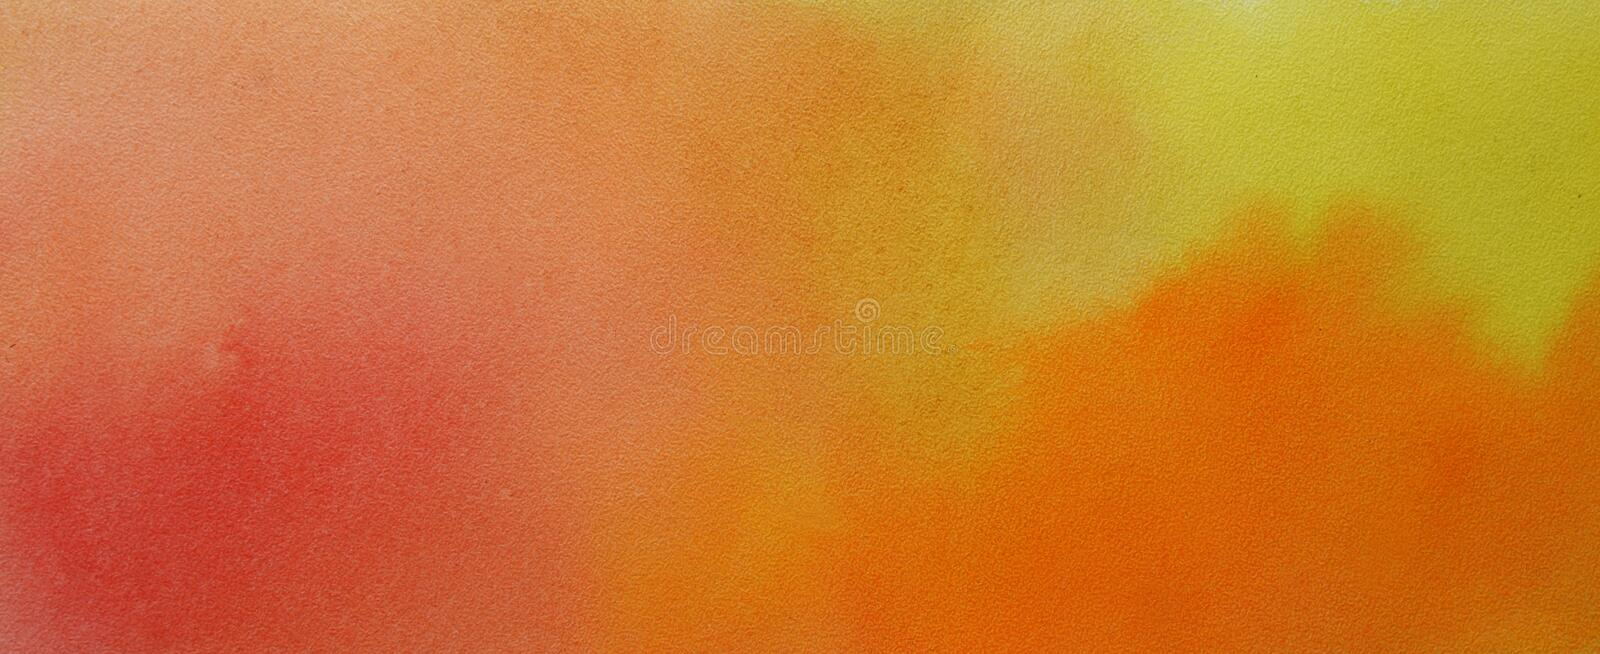 Watercolor hand painted abstract brush strokes pattern. Yellow orange red gradient background. Autumn colors stock photography